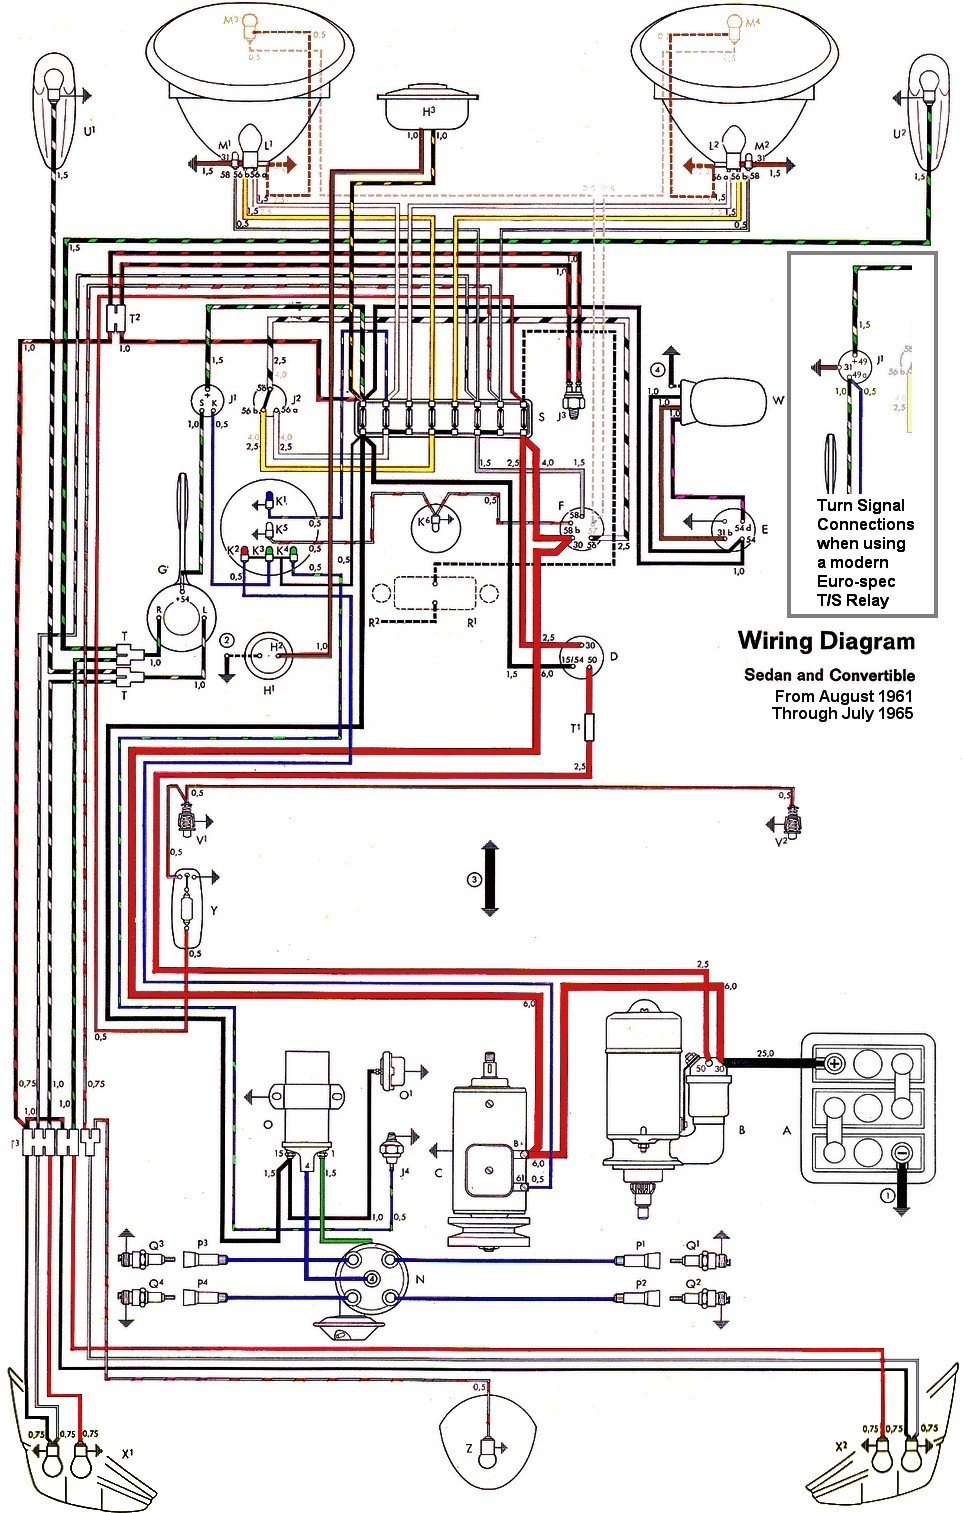 bug_62 65withinset wiring diagram vw beetle sedan and convertible 1961 1965 vw 1971 vw bus wiring diagram at honlapkeszites.co